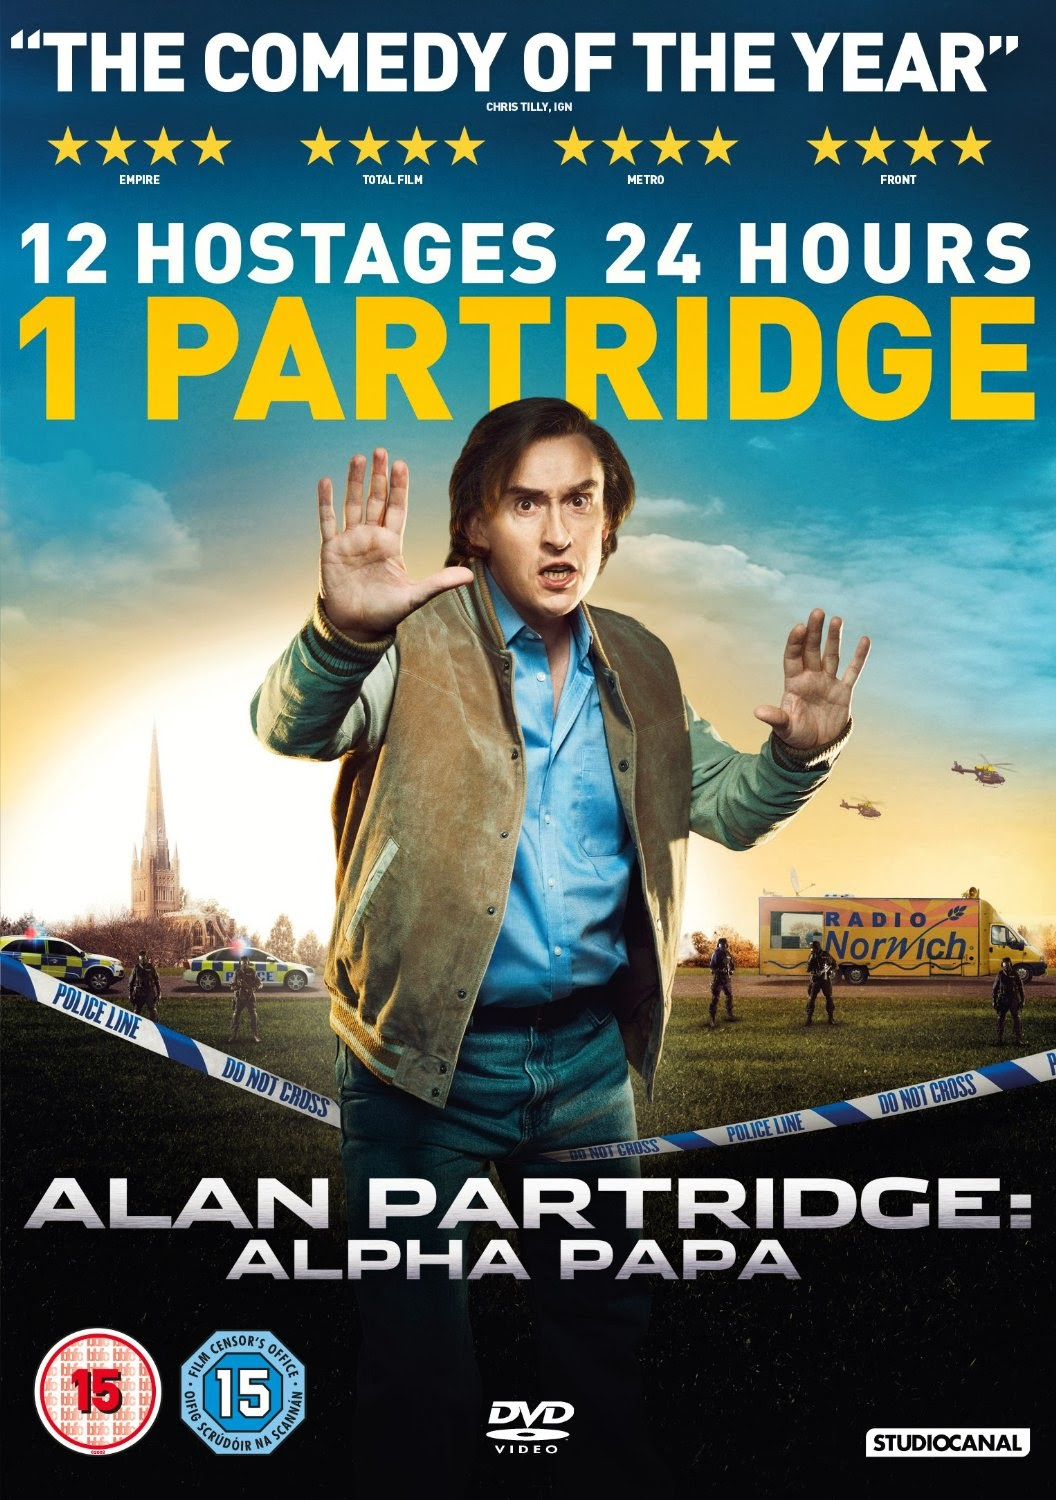 Алан Партридж - Alan Partridge- Alpha Papa